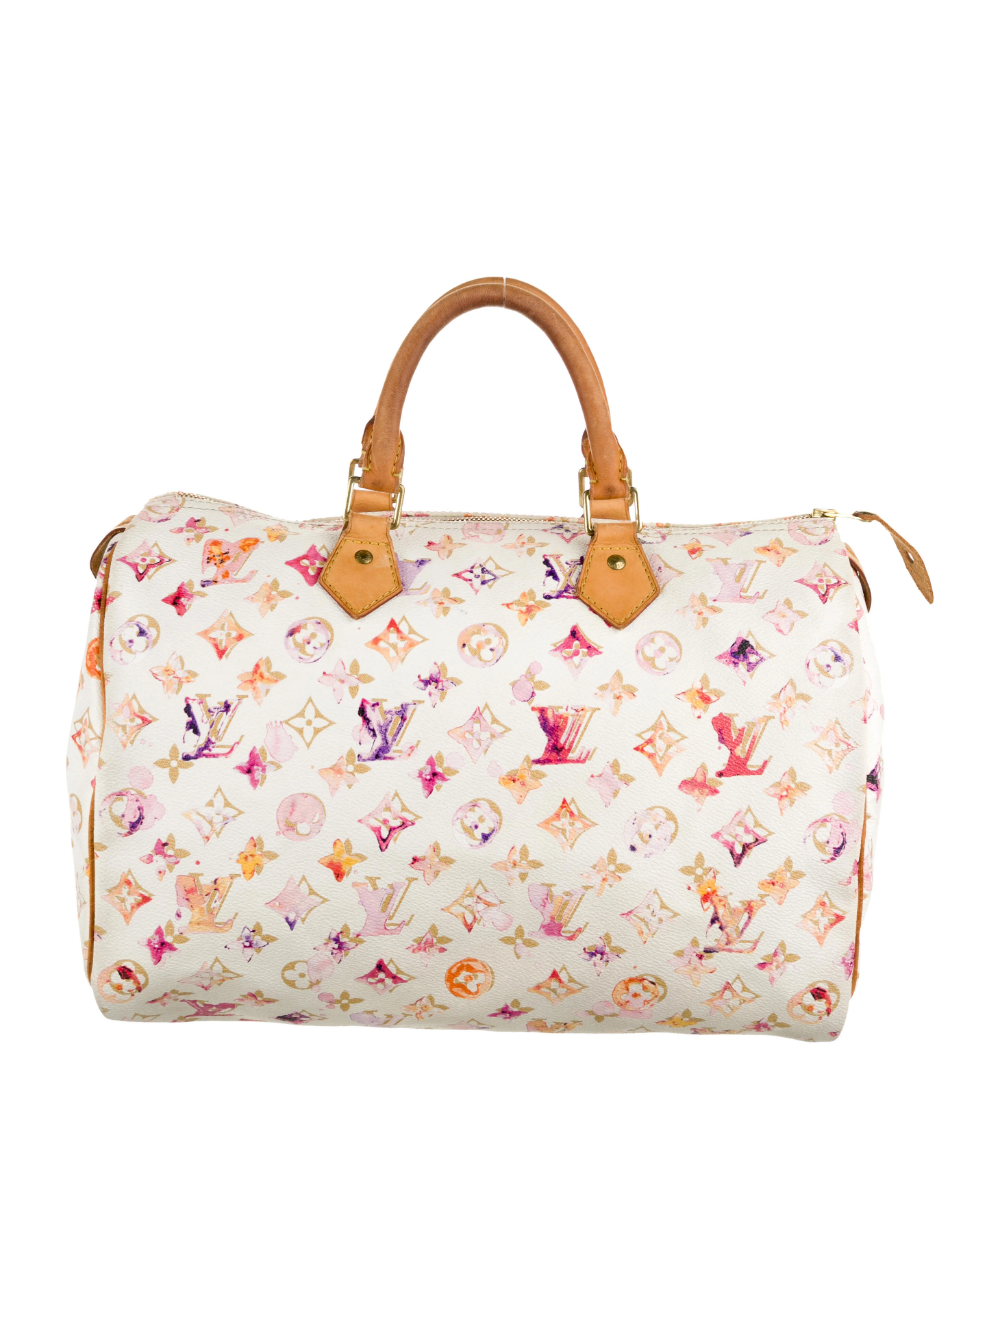 Limited Edition White And Multicolor Monogram Watercolor Coated Canvas Louis Vuitton Aquarelle Speedy 3 Handbag Handles Louis Vuitton Louis Vuitton Speedy Bag